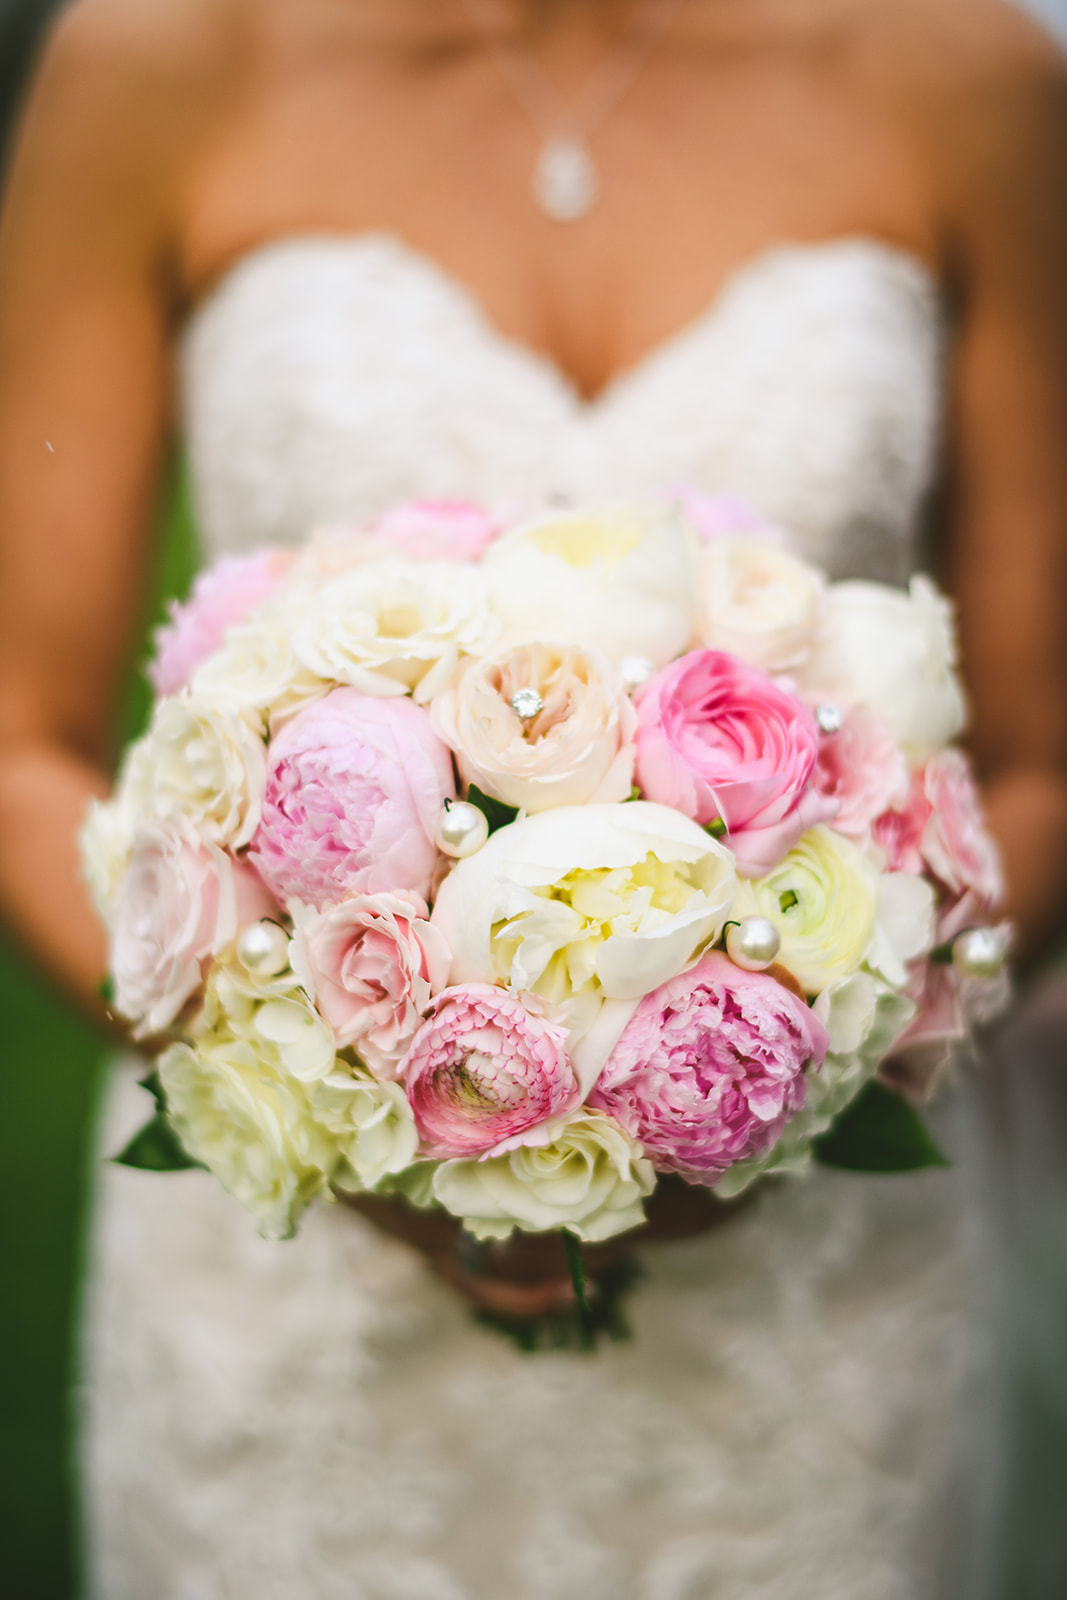 Atelier Ashley Flowers + Sam Hurd Photography + Washington Golf and Country Club + Diamond and Pearl Wedding + pink and white + pink and white flowers + bouquet with pearls + bouquet with diamonds + white peonies + pink peonies